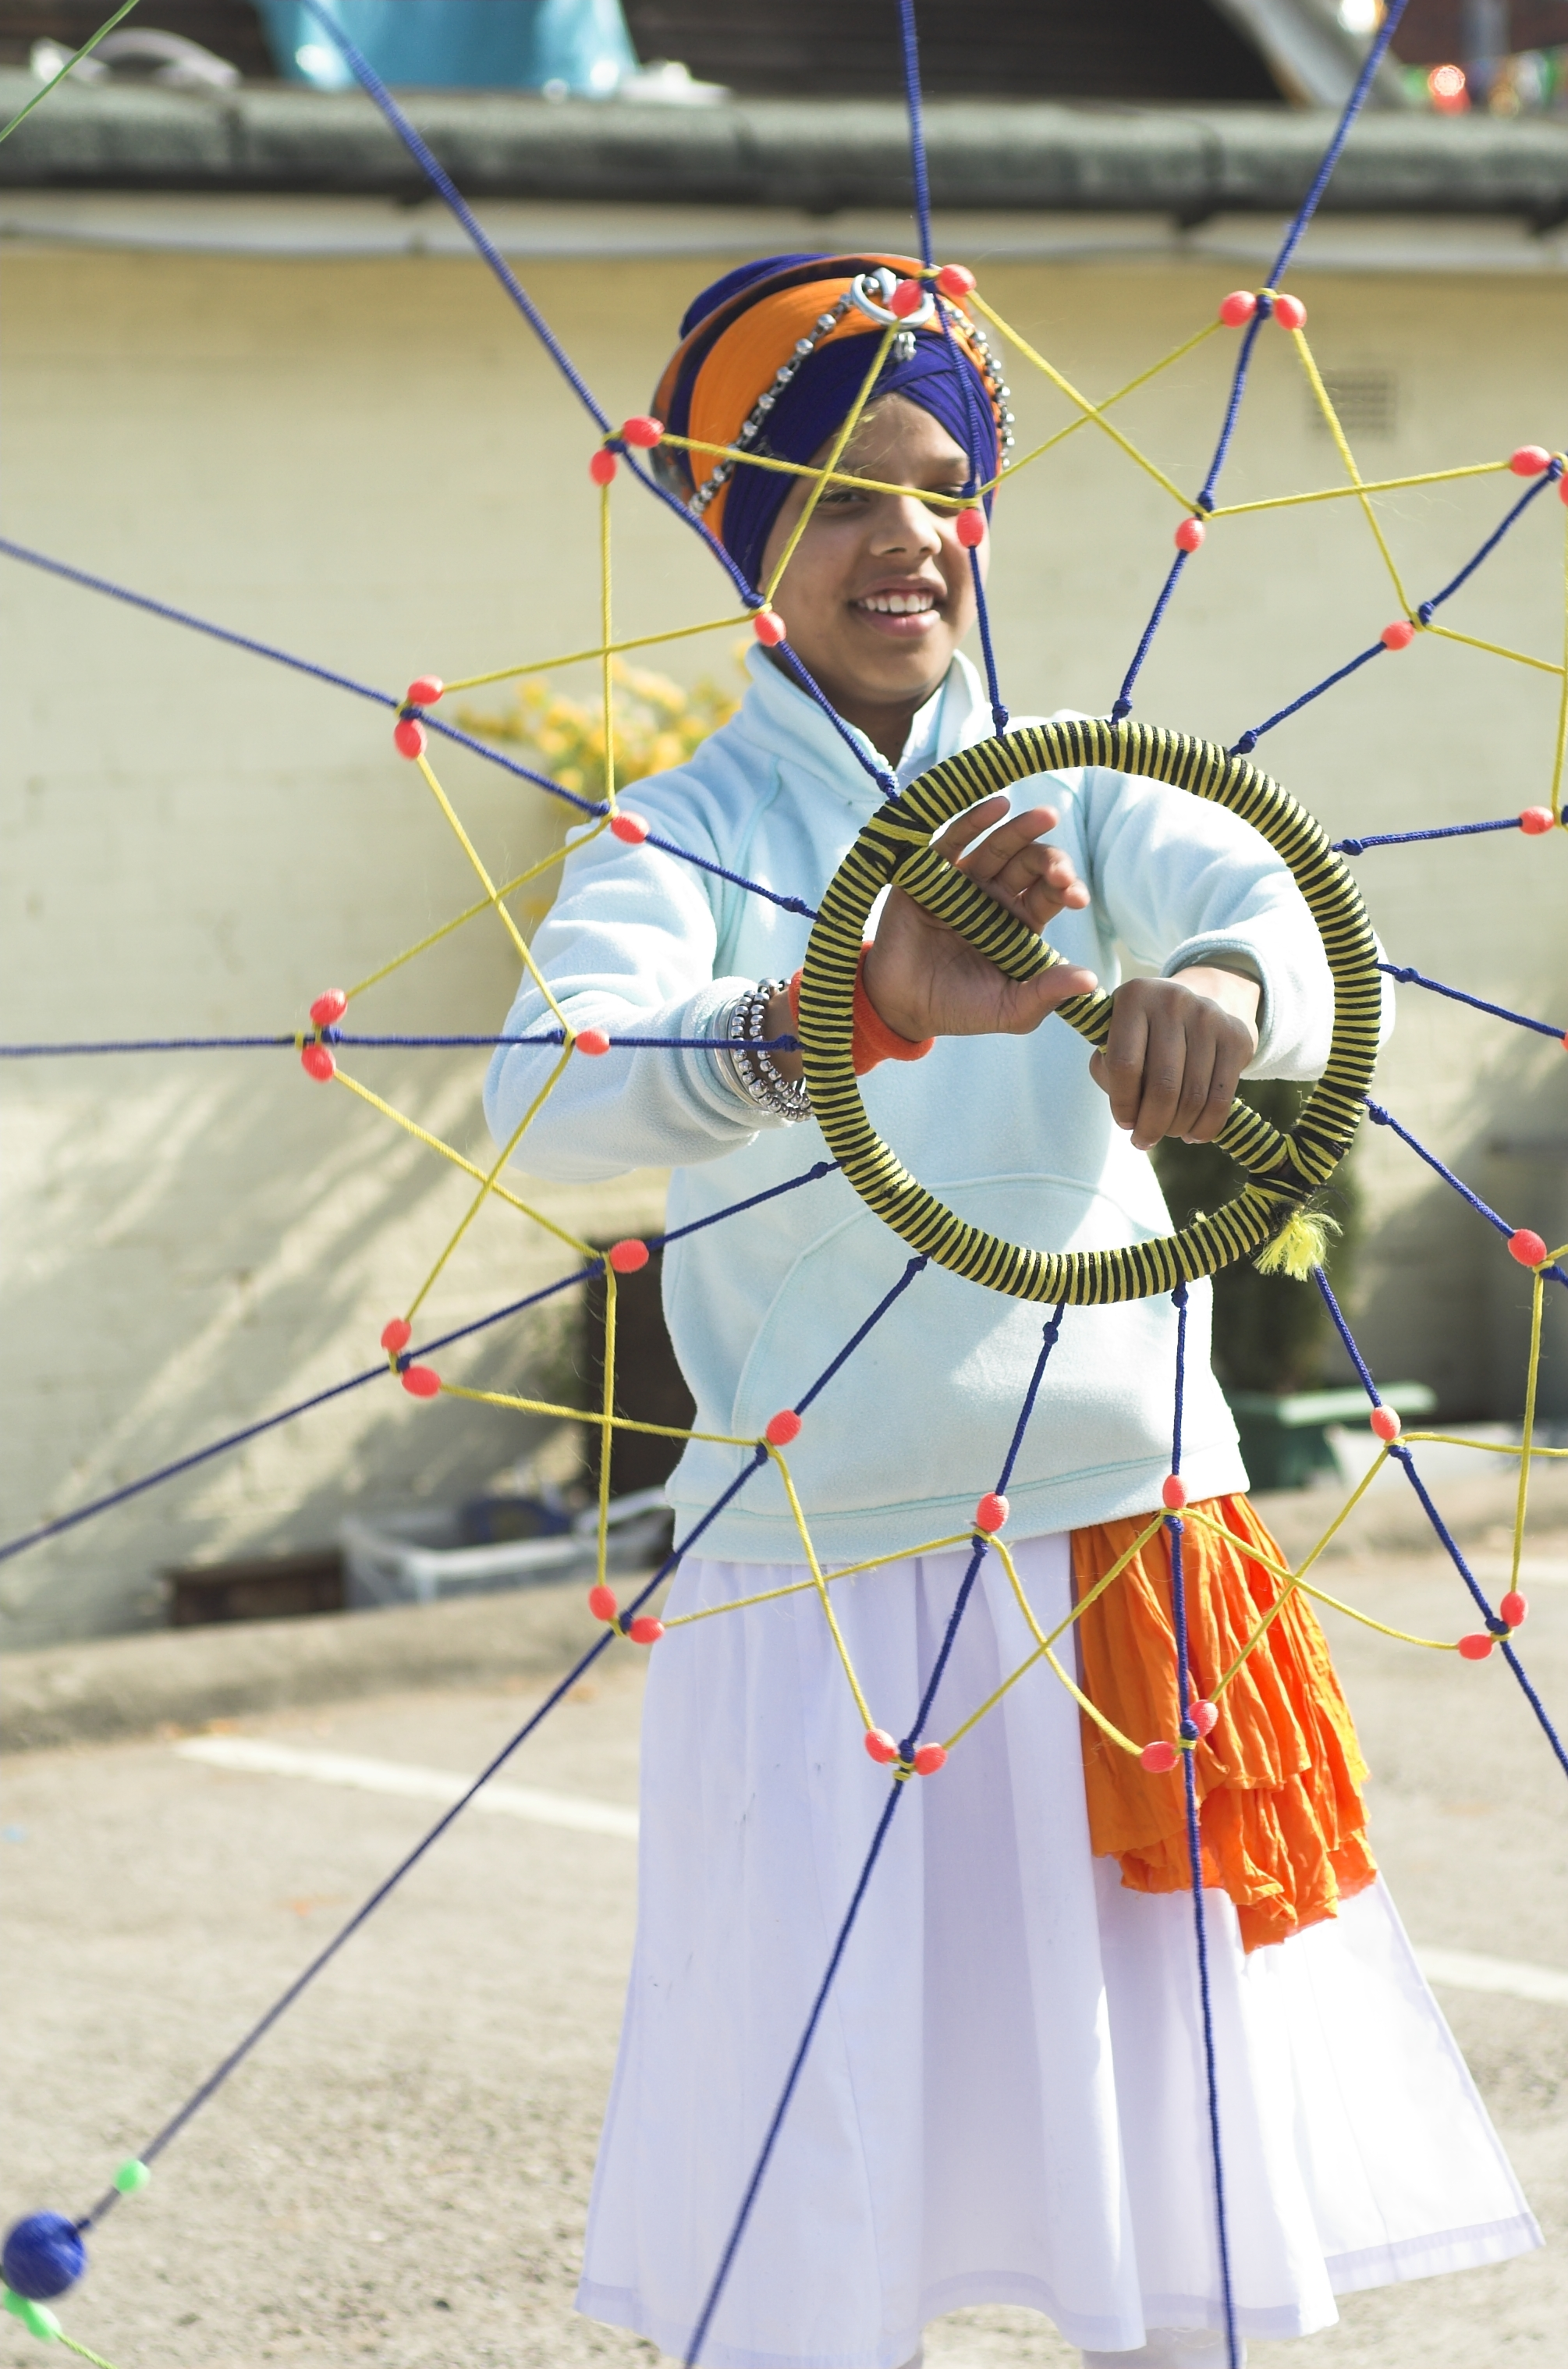 File:A young boy practising, Gatka, SIkh martial art.jpg ...